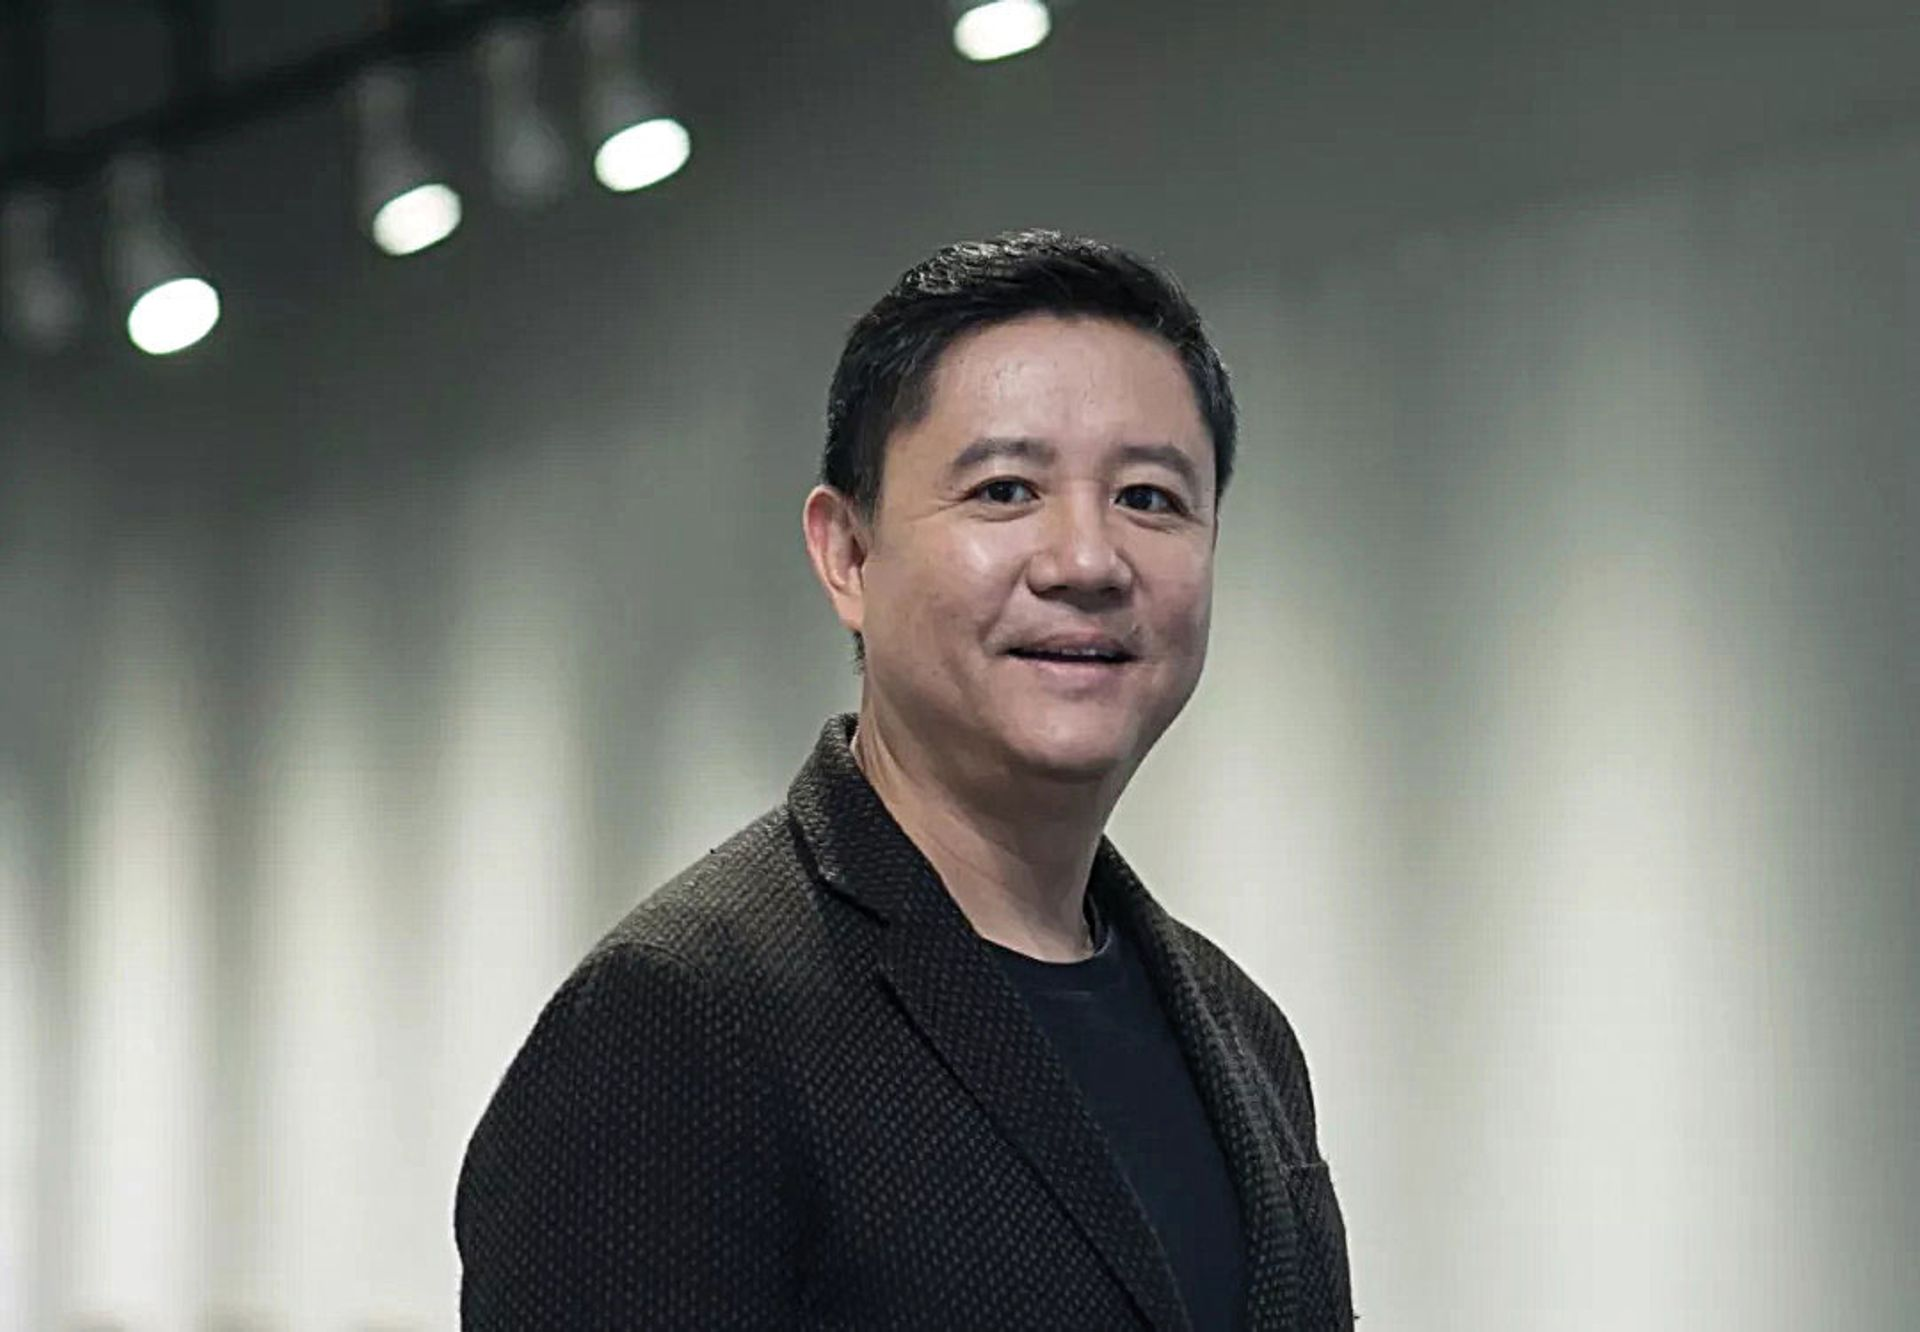 Gary Xu Gang was allowed to resign from the University of Illinois at Urbana-Champaign in August 2018 with a $10,000bonus Photo: Shenzhen Biennale